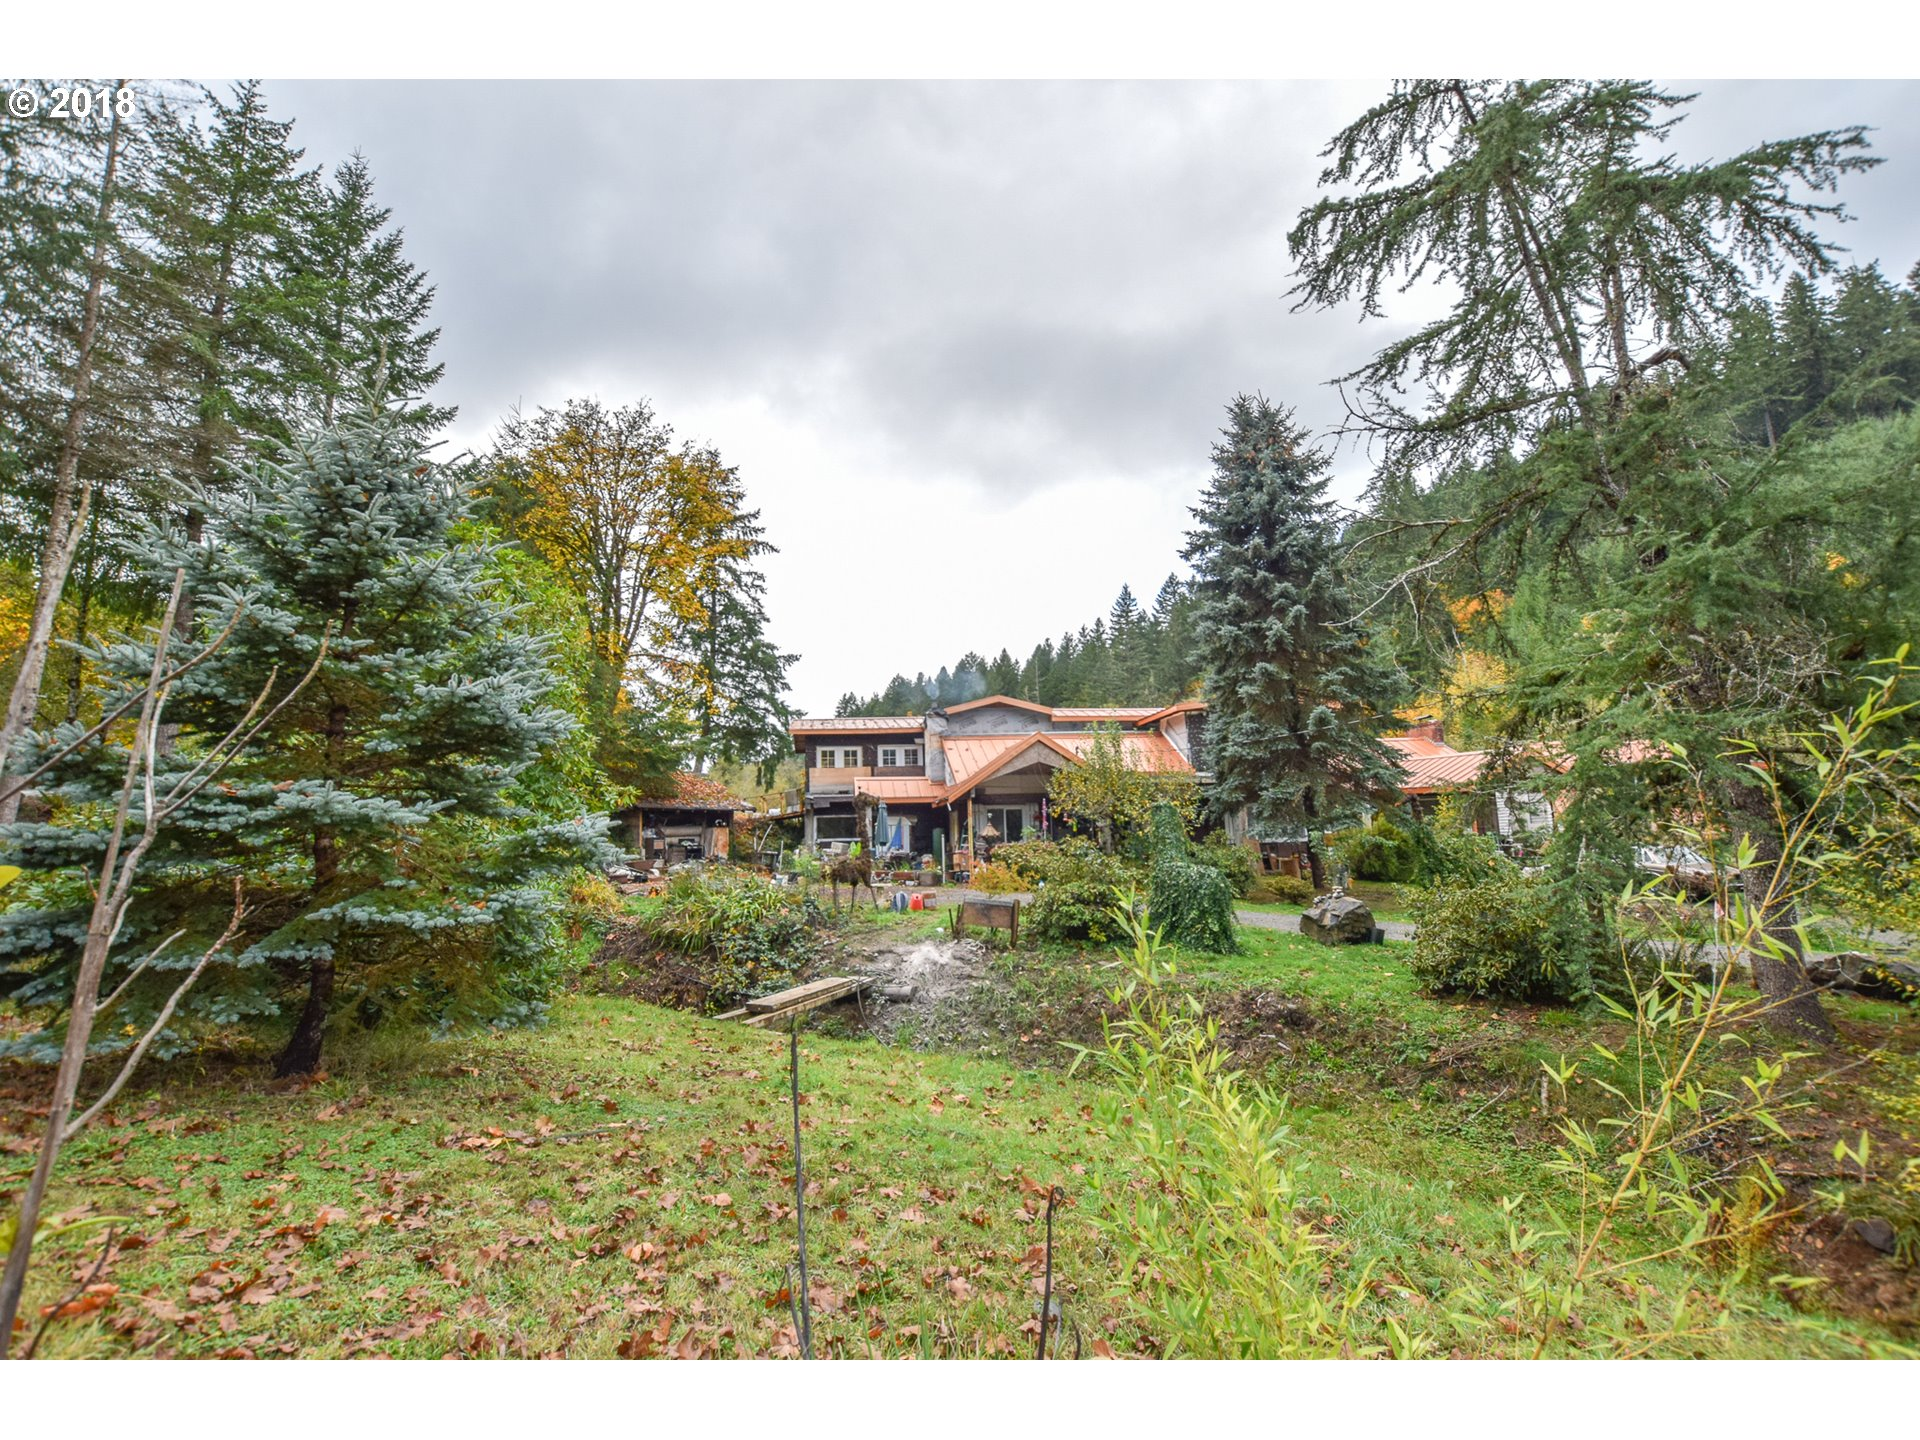 24382 HIGH PASS RD Junction City, OR 97448 - MLS #: 18646405